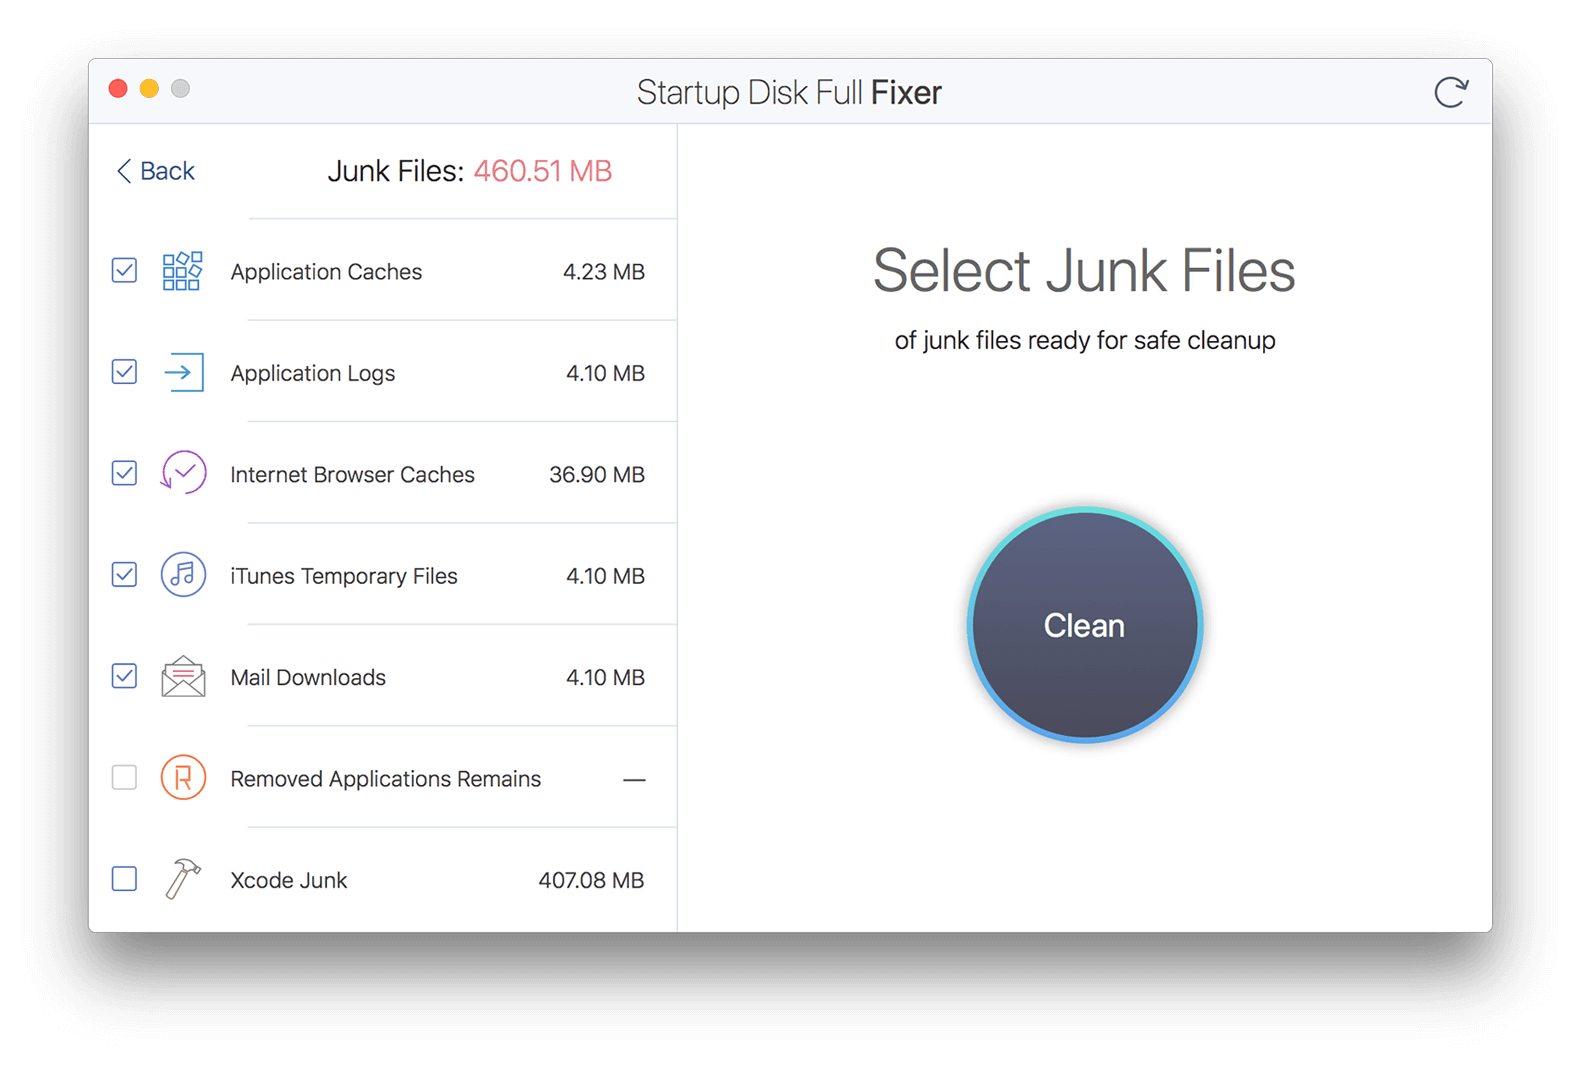 Startup Disk Full Fixer application window